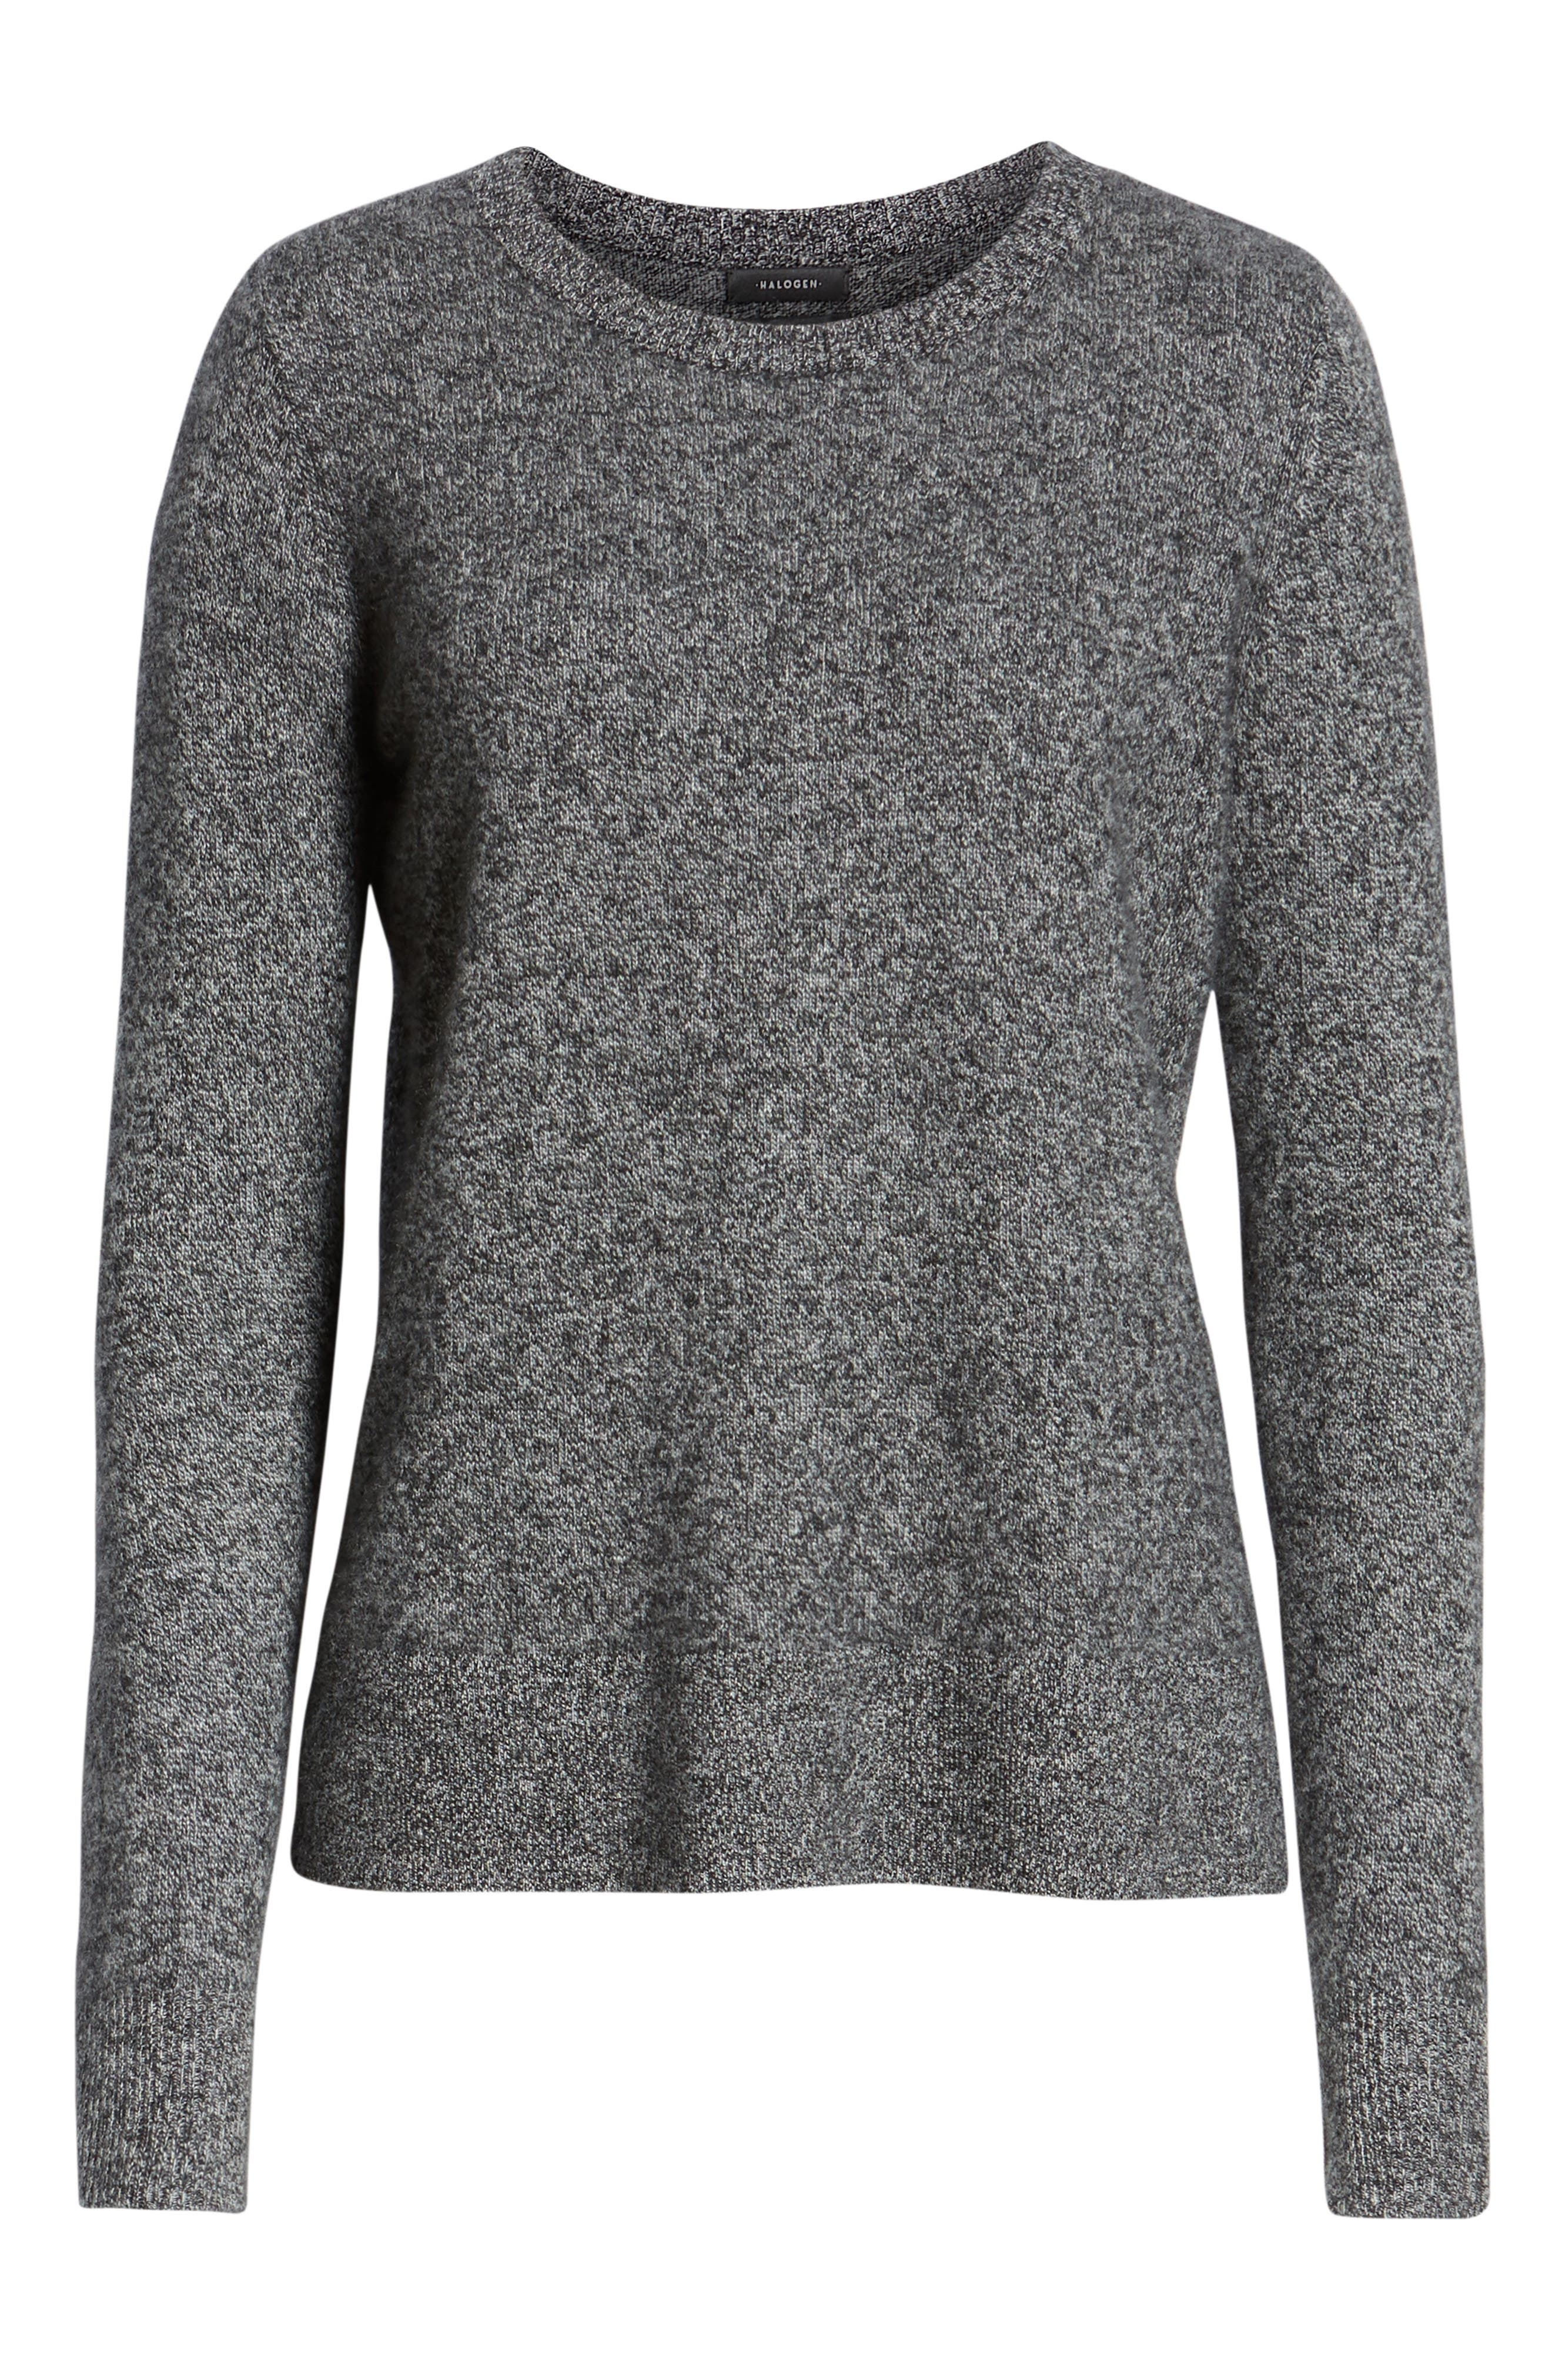 Crewneck Cashmere Sweater,                             Alternate thumbnail 6, color,                             BLACK- GREY MARL